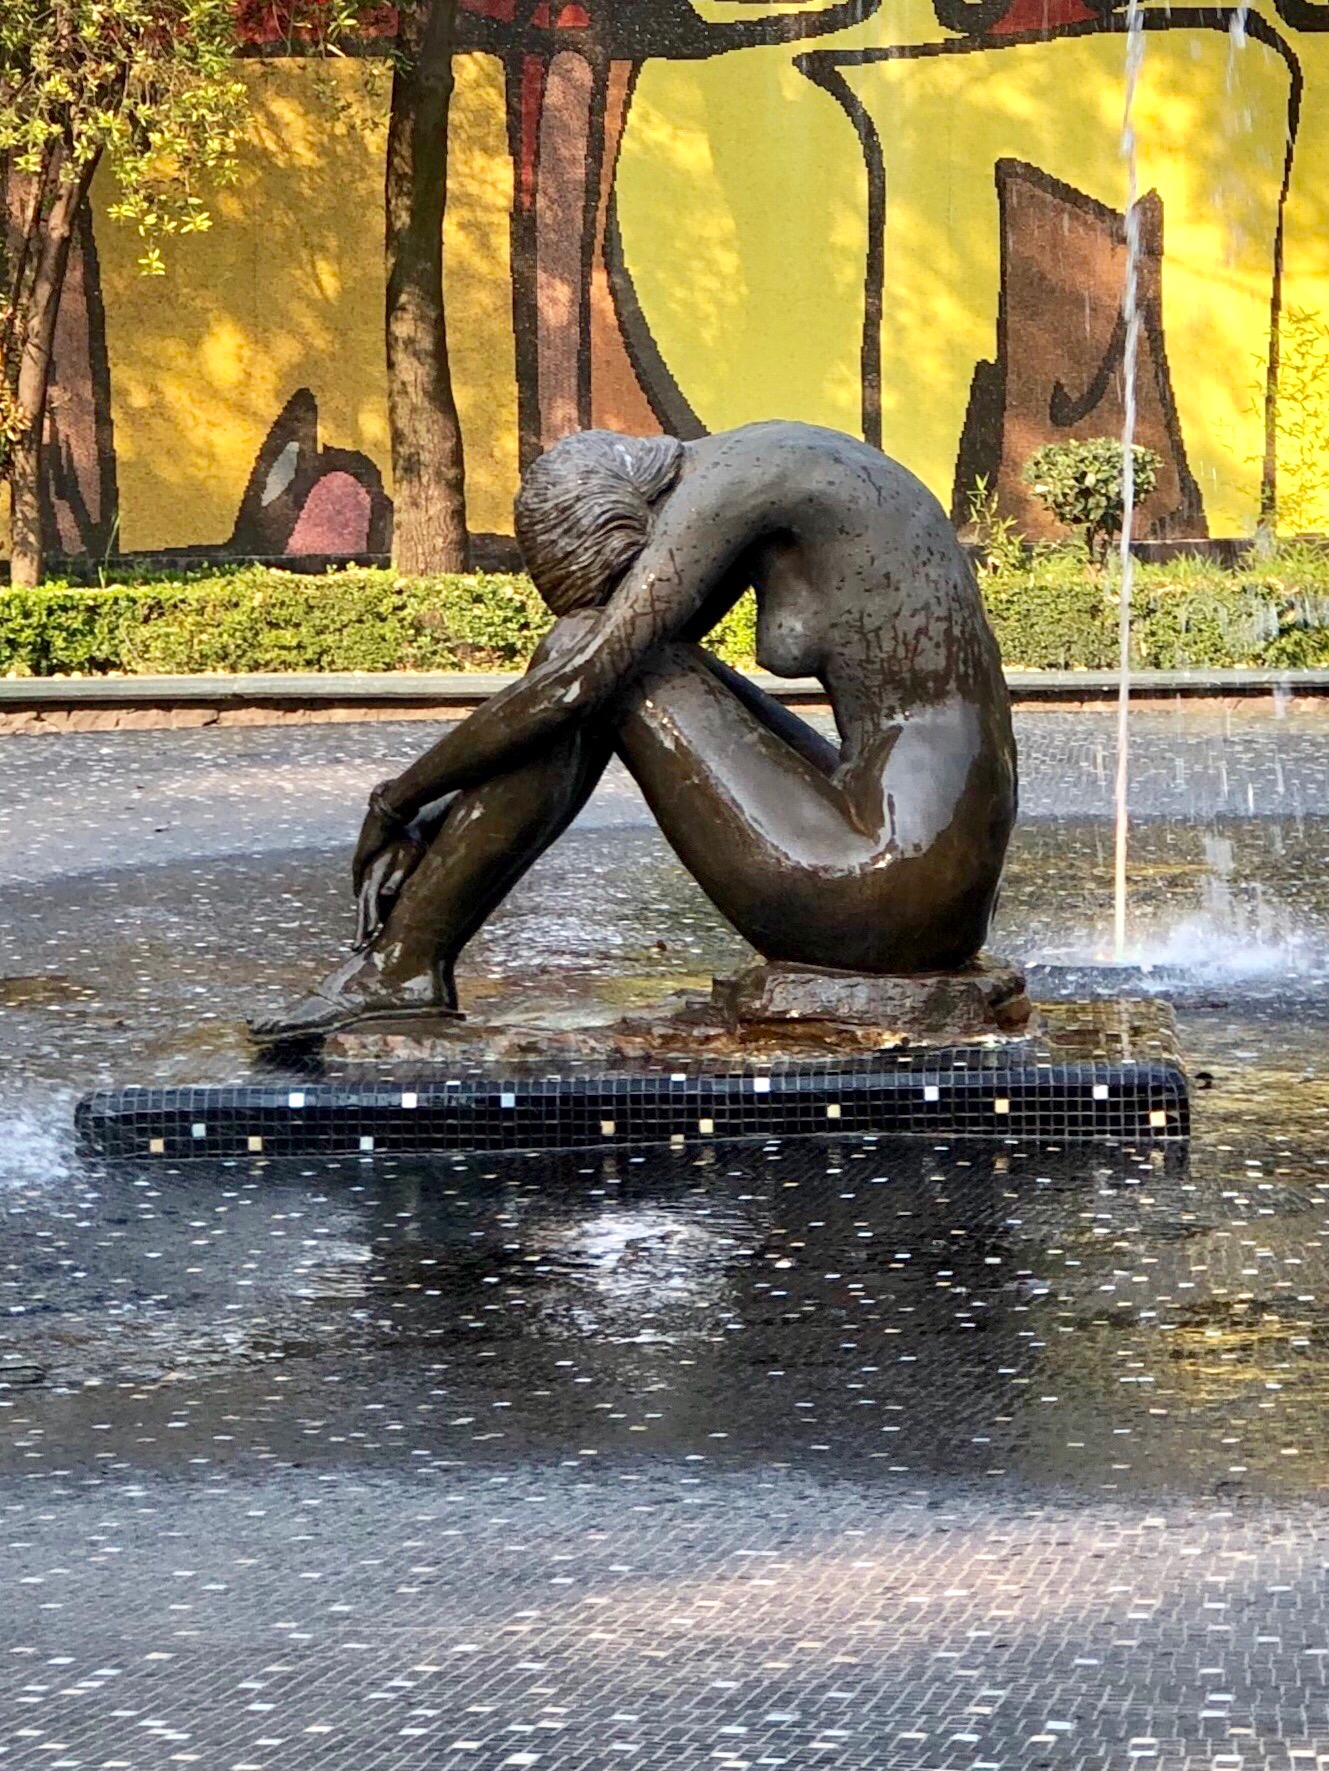 Like the coyote fountain in Plaza Hidalgo, this woman was sculpted by Ponzanelli